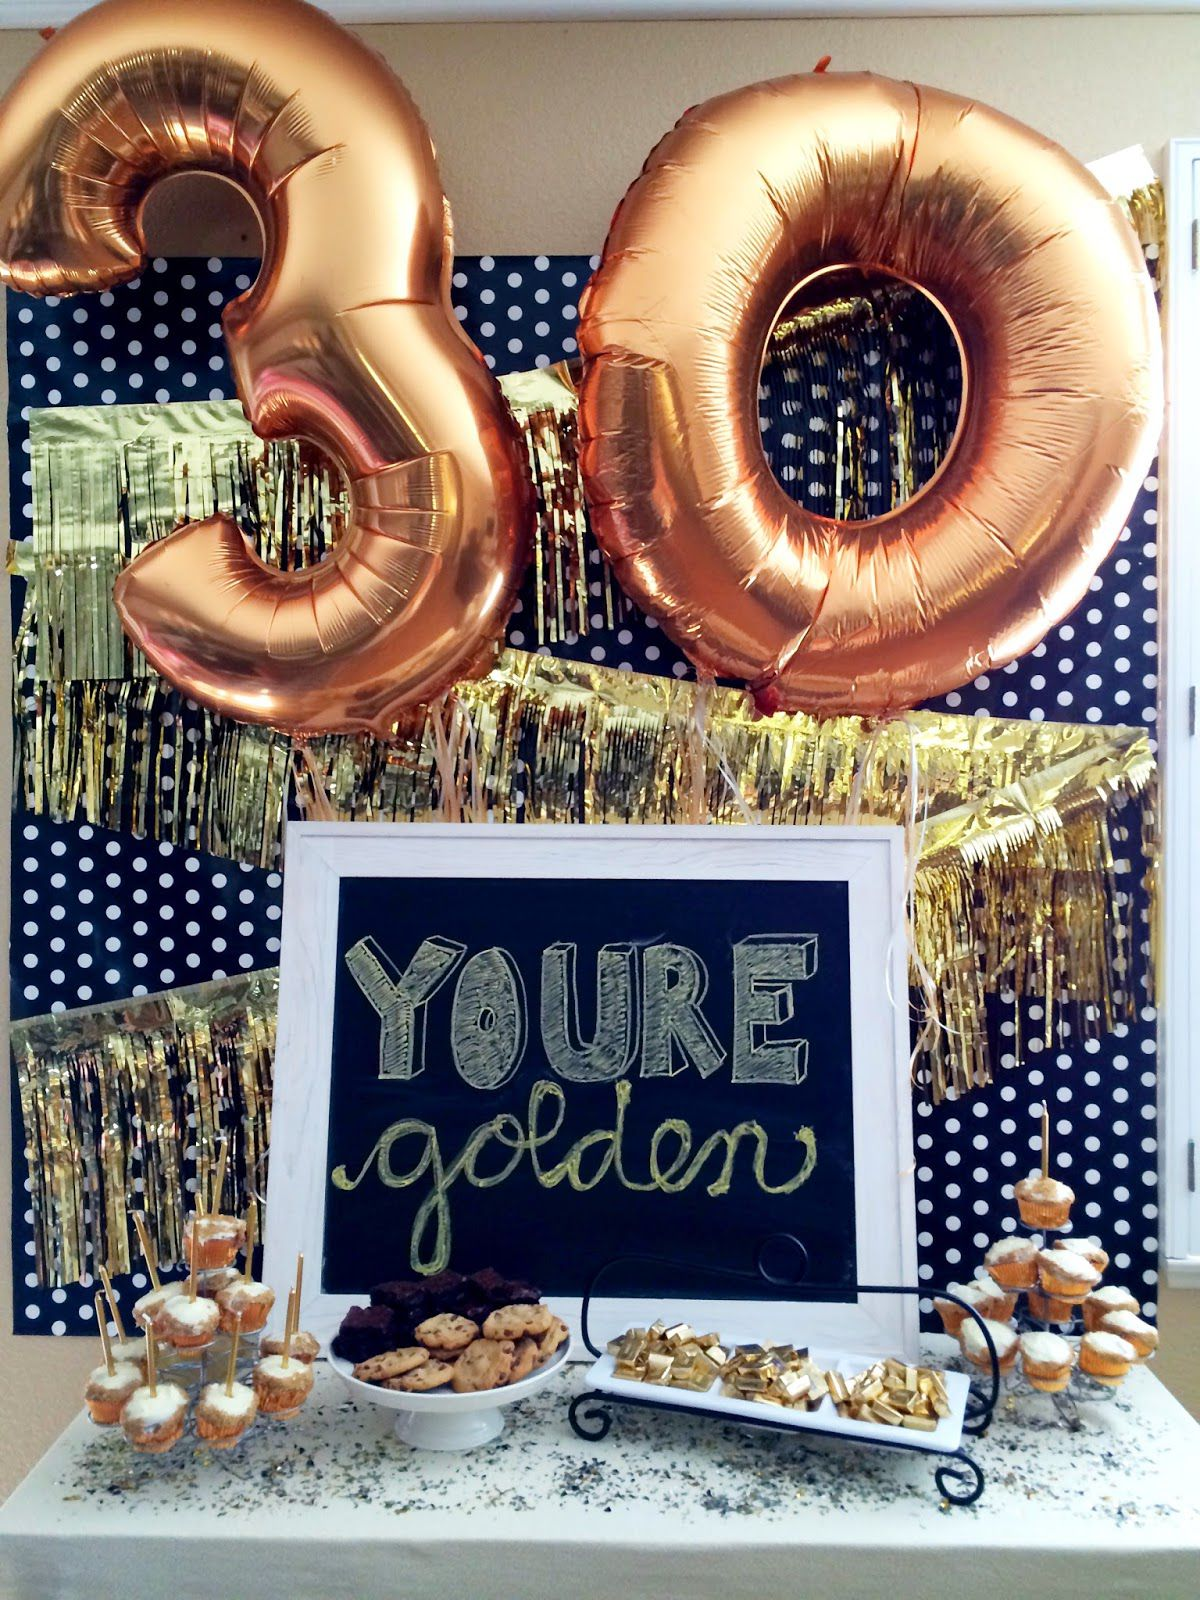 30 birthday ideas 15 Great Party Ideas for Your 30th Birthday 30 birthday ideas